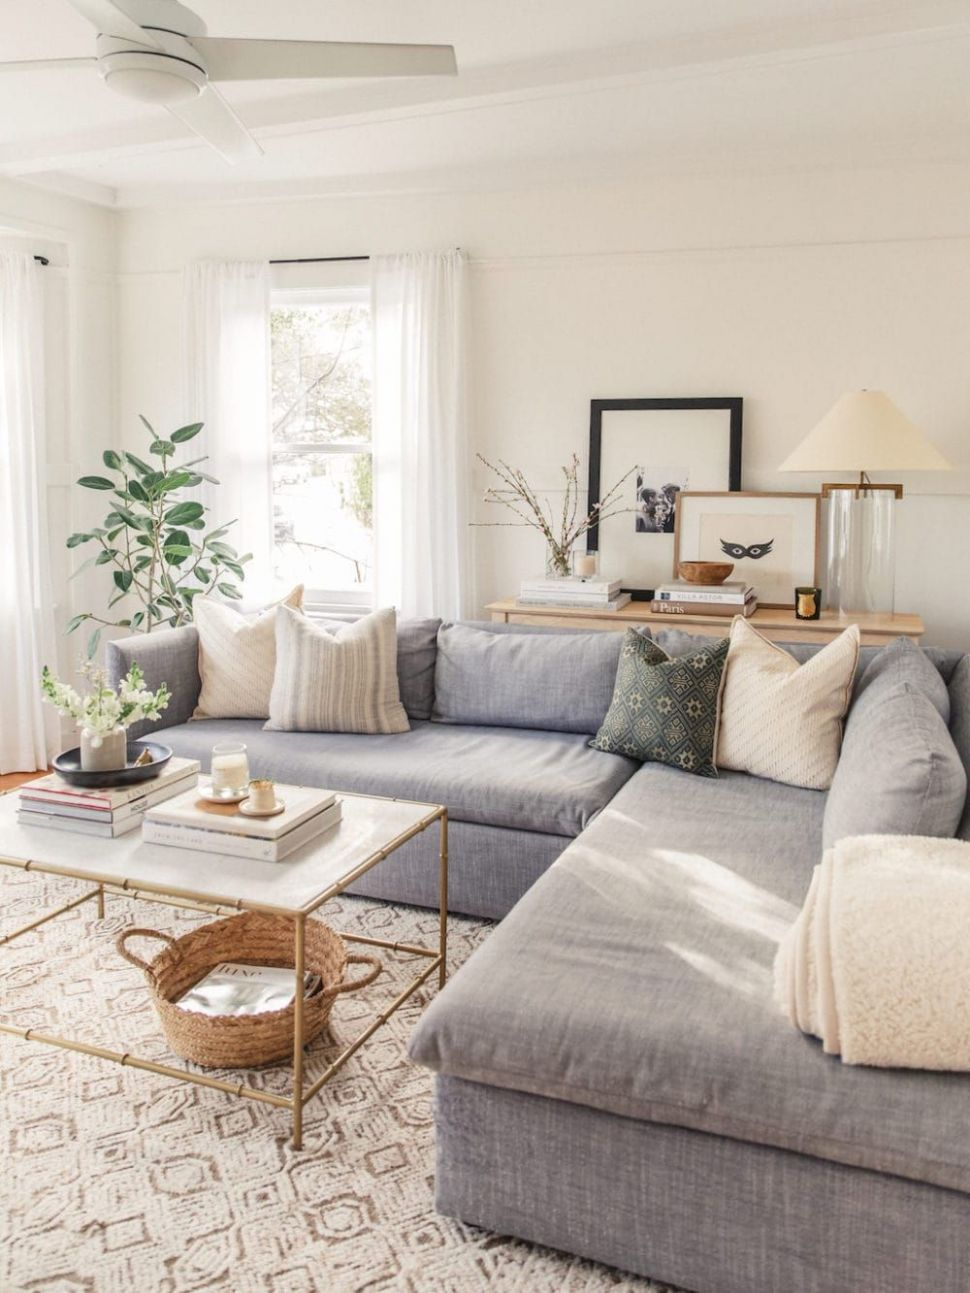 Home Decorating Trends 9 (With images) | Small apartment ..